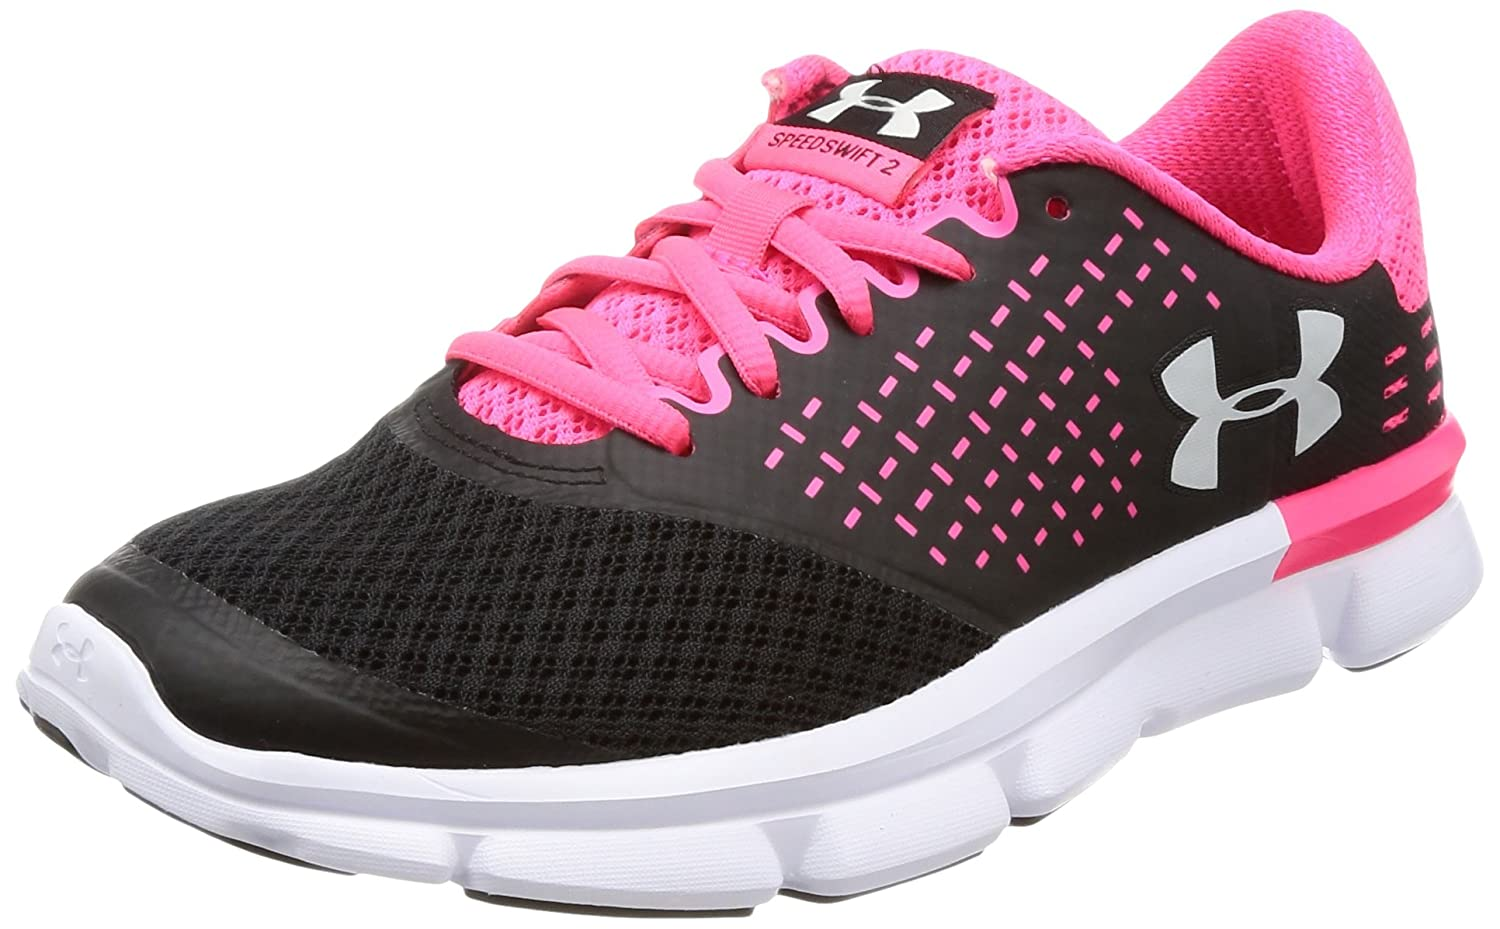 Under Armour Women's Speed Swift 2 Running Shoe B078HK6YGZ 5 B(M) US|Black/Penta Pink